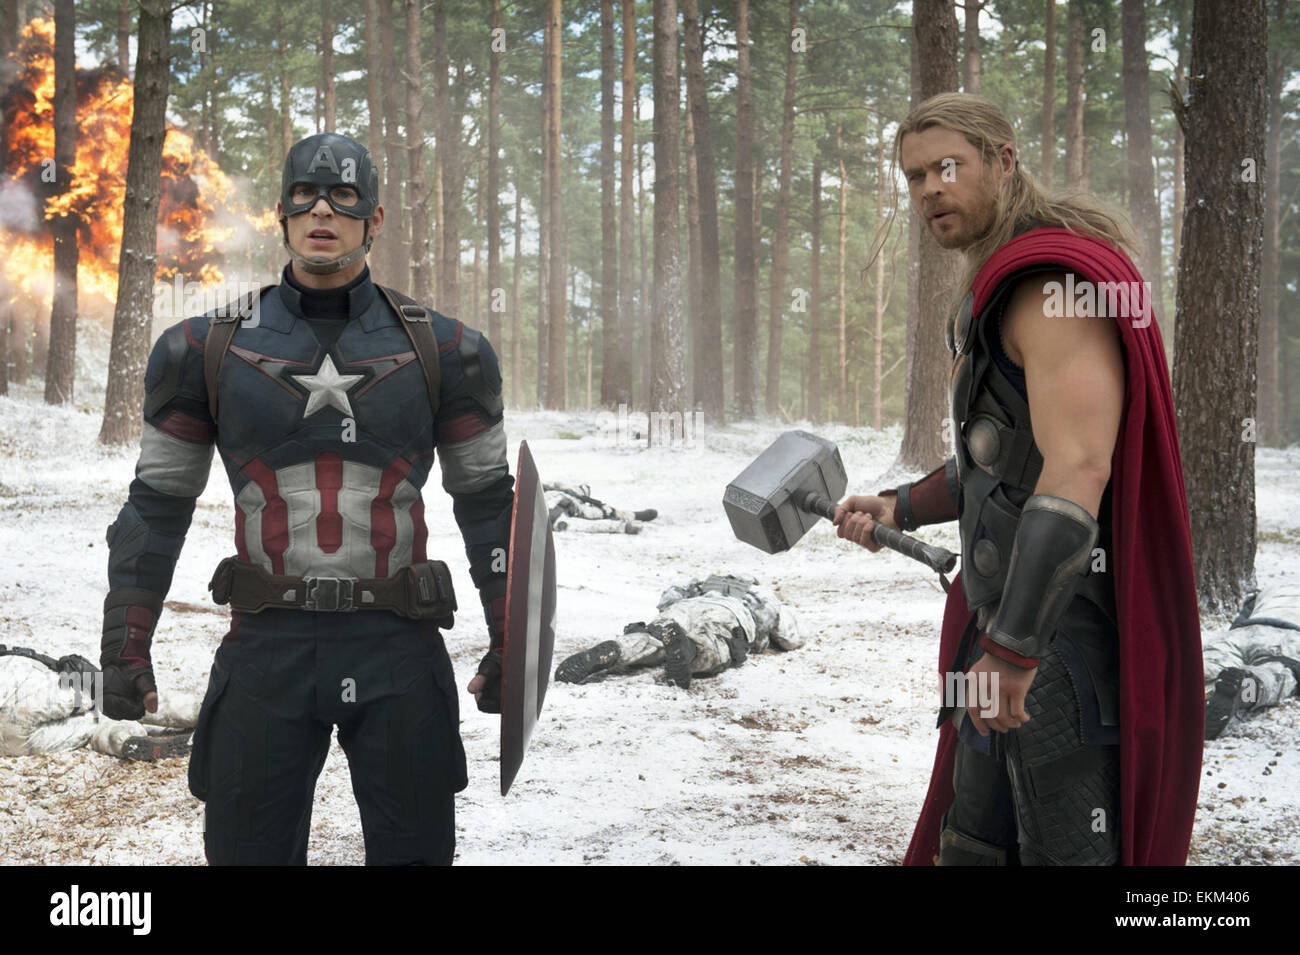 Avengers: Age of Ultron is an upcoming American superhero film based on the Marvel Comics superhero team the Avengers, - Stock Image